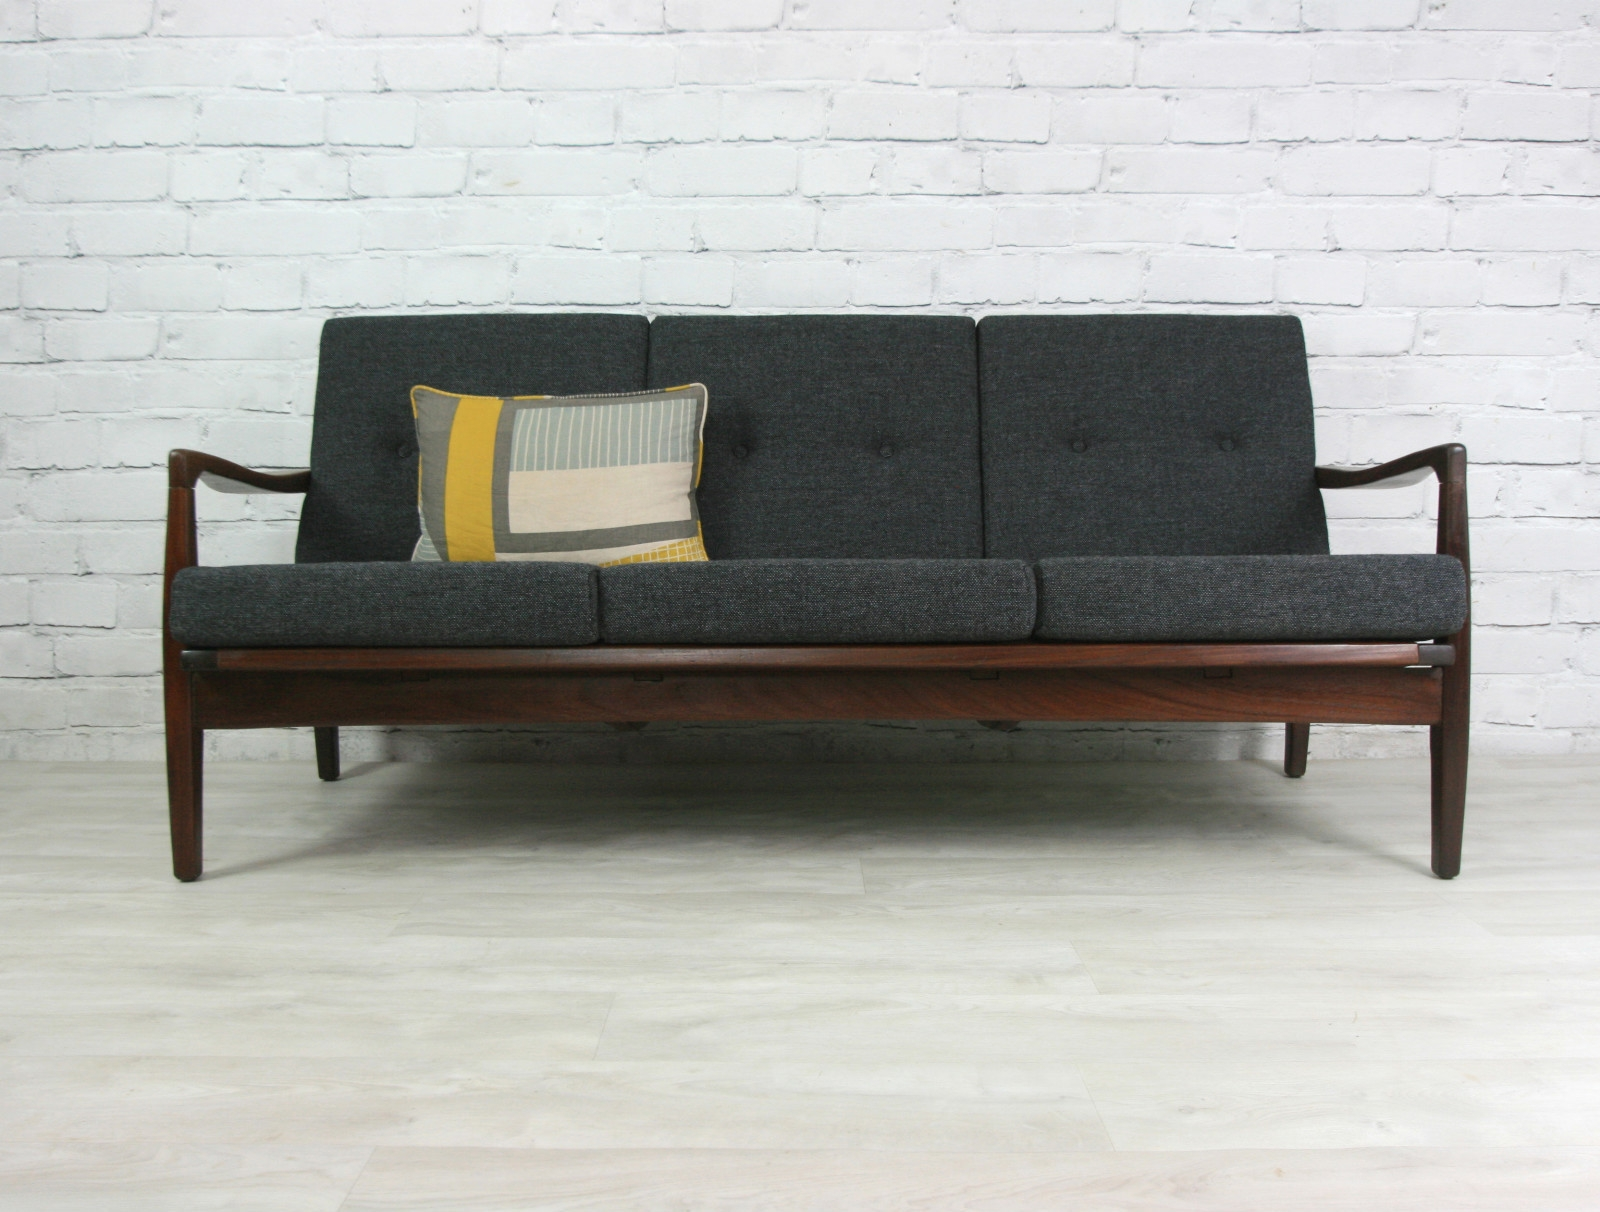 Best 20 Retro Sofa Ideas On Pinterest In Retro Sofas And Chairs (Image 3 of 15)